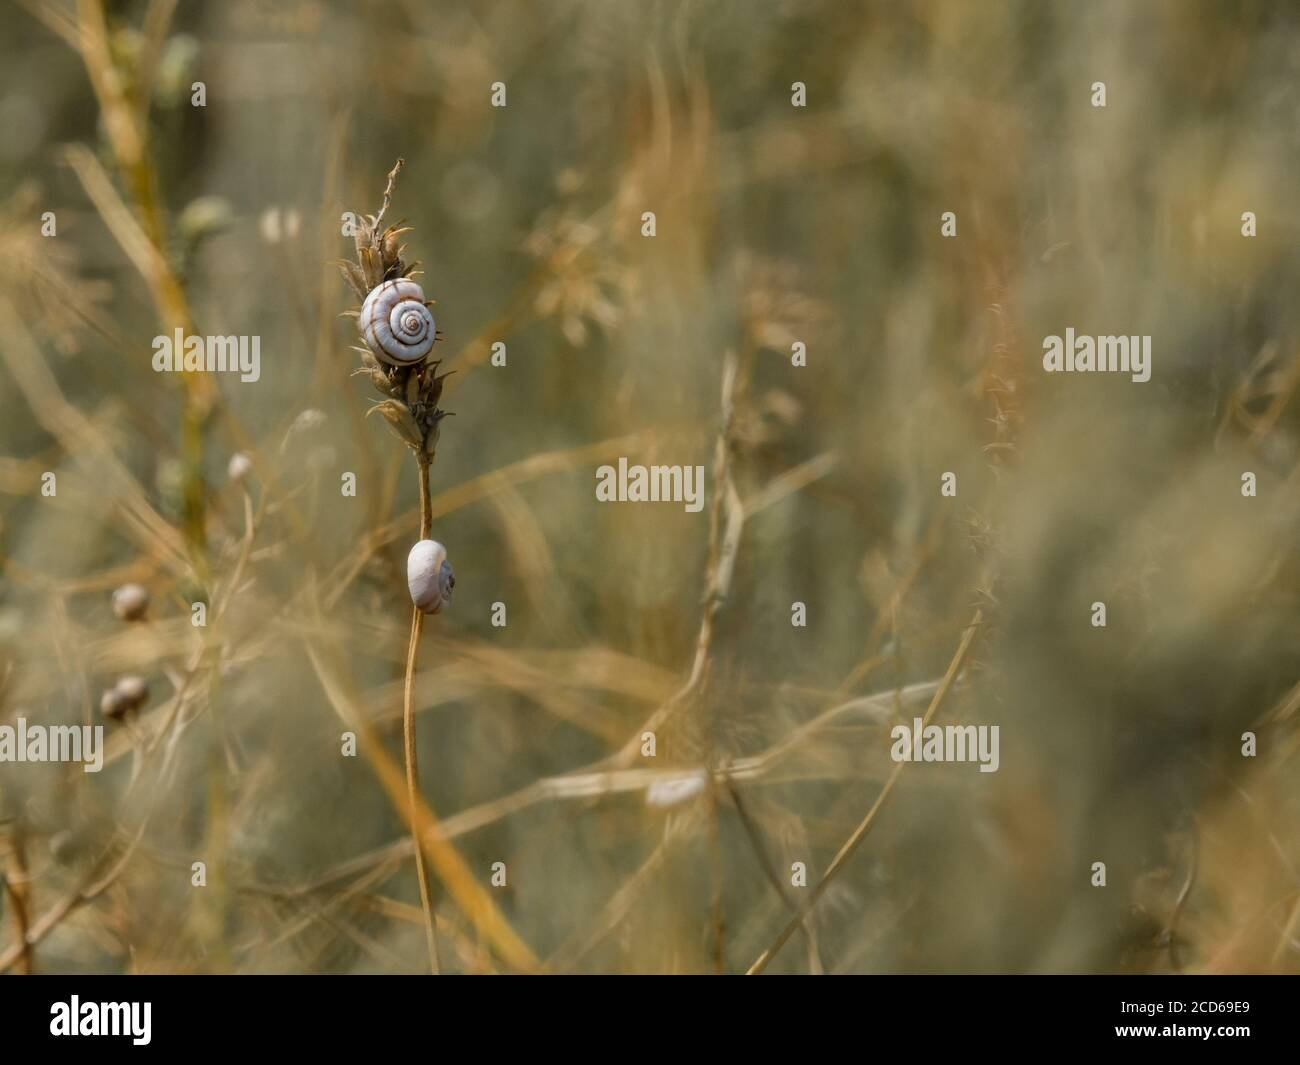 Selective focus on small spiral shells of steppe snails on dried plant stems. Beautiful natural background. Macro shot of molluscs in the wild. Copy Stock Photo